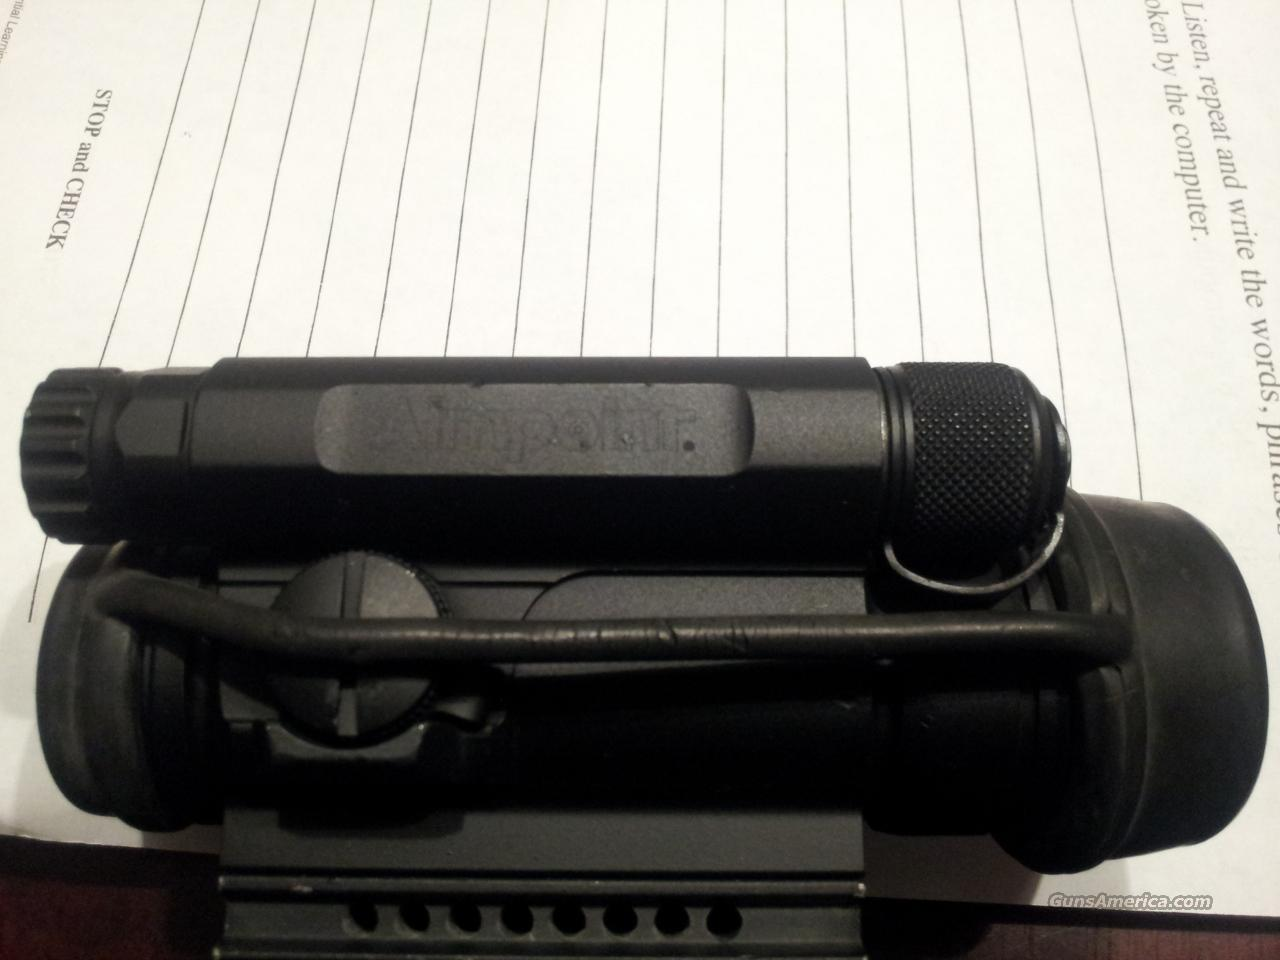 Used Aimpoint CompM4 Comp M4 Red Dot  Non-Guns > Scopes/Mounts/Rings & Optics > Tactical Scopes > Red Dot